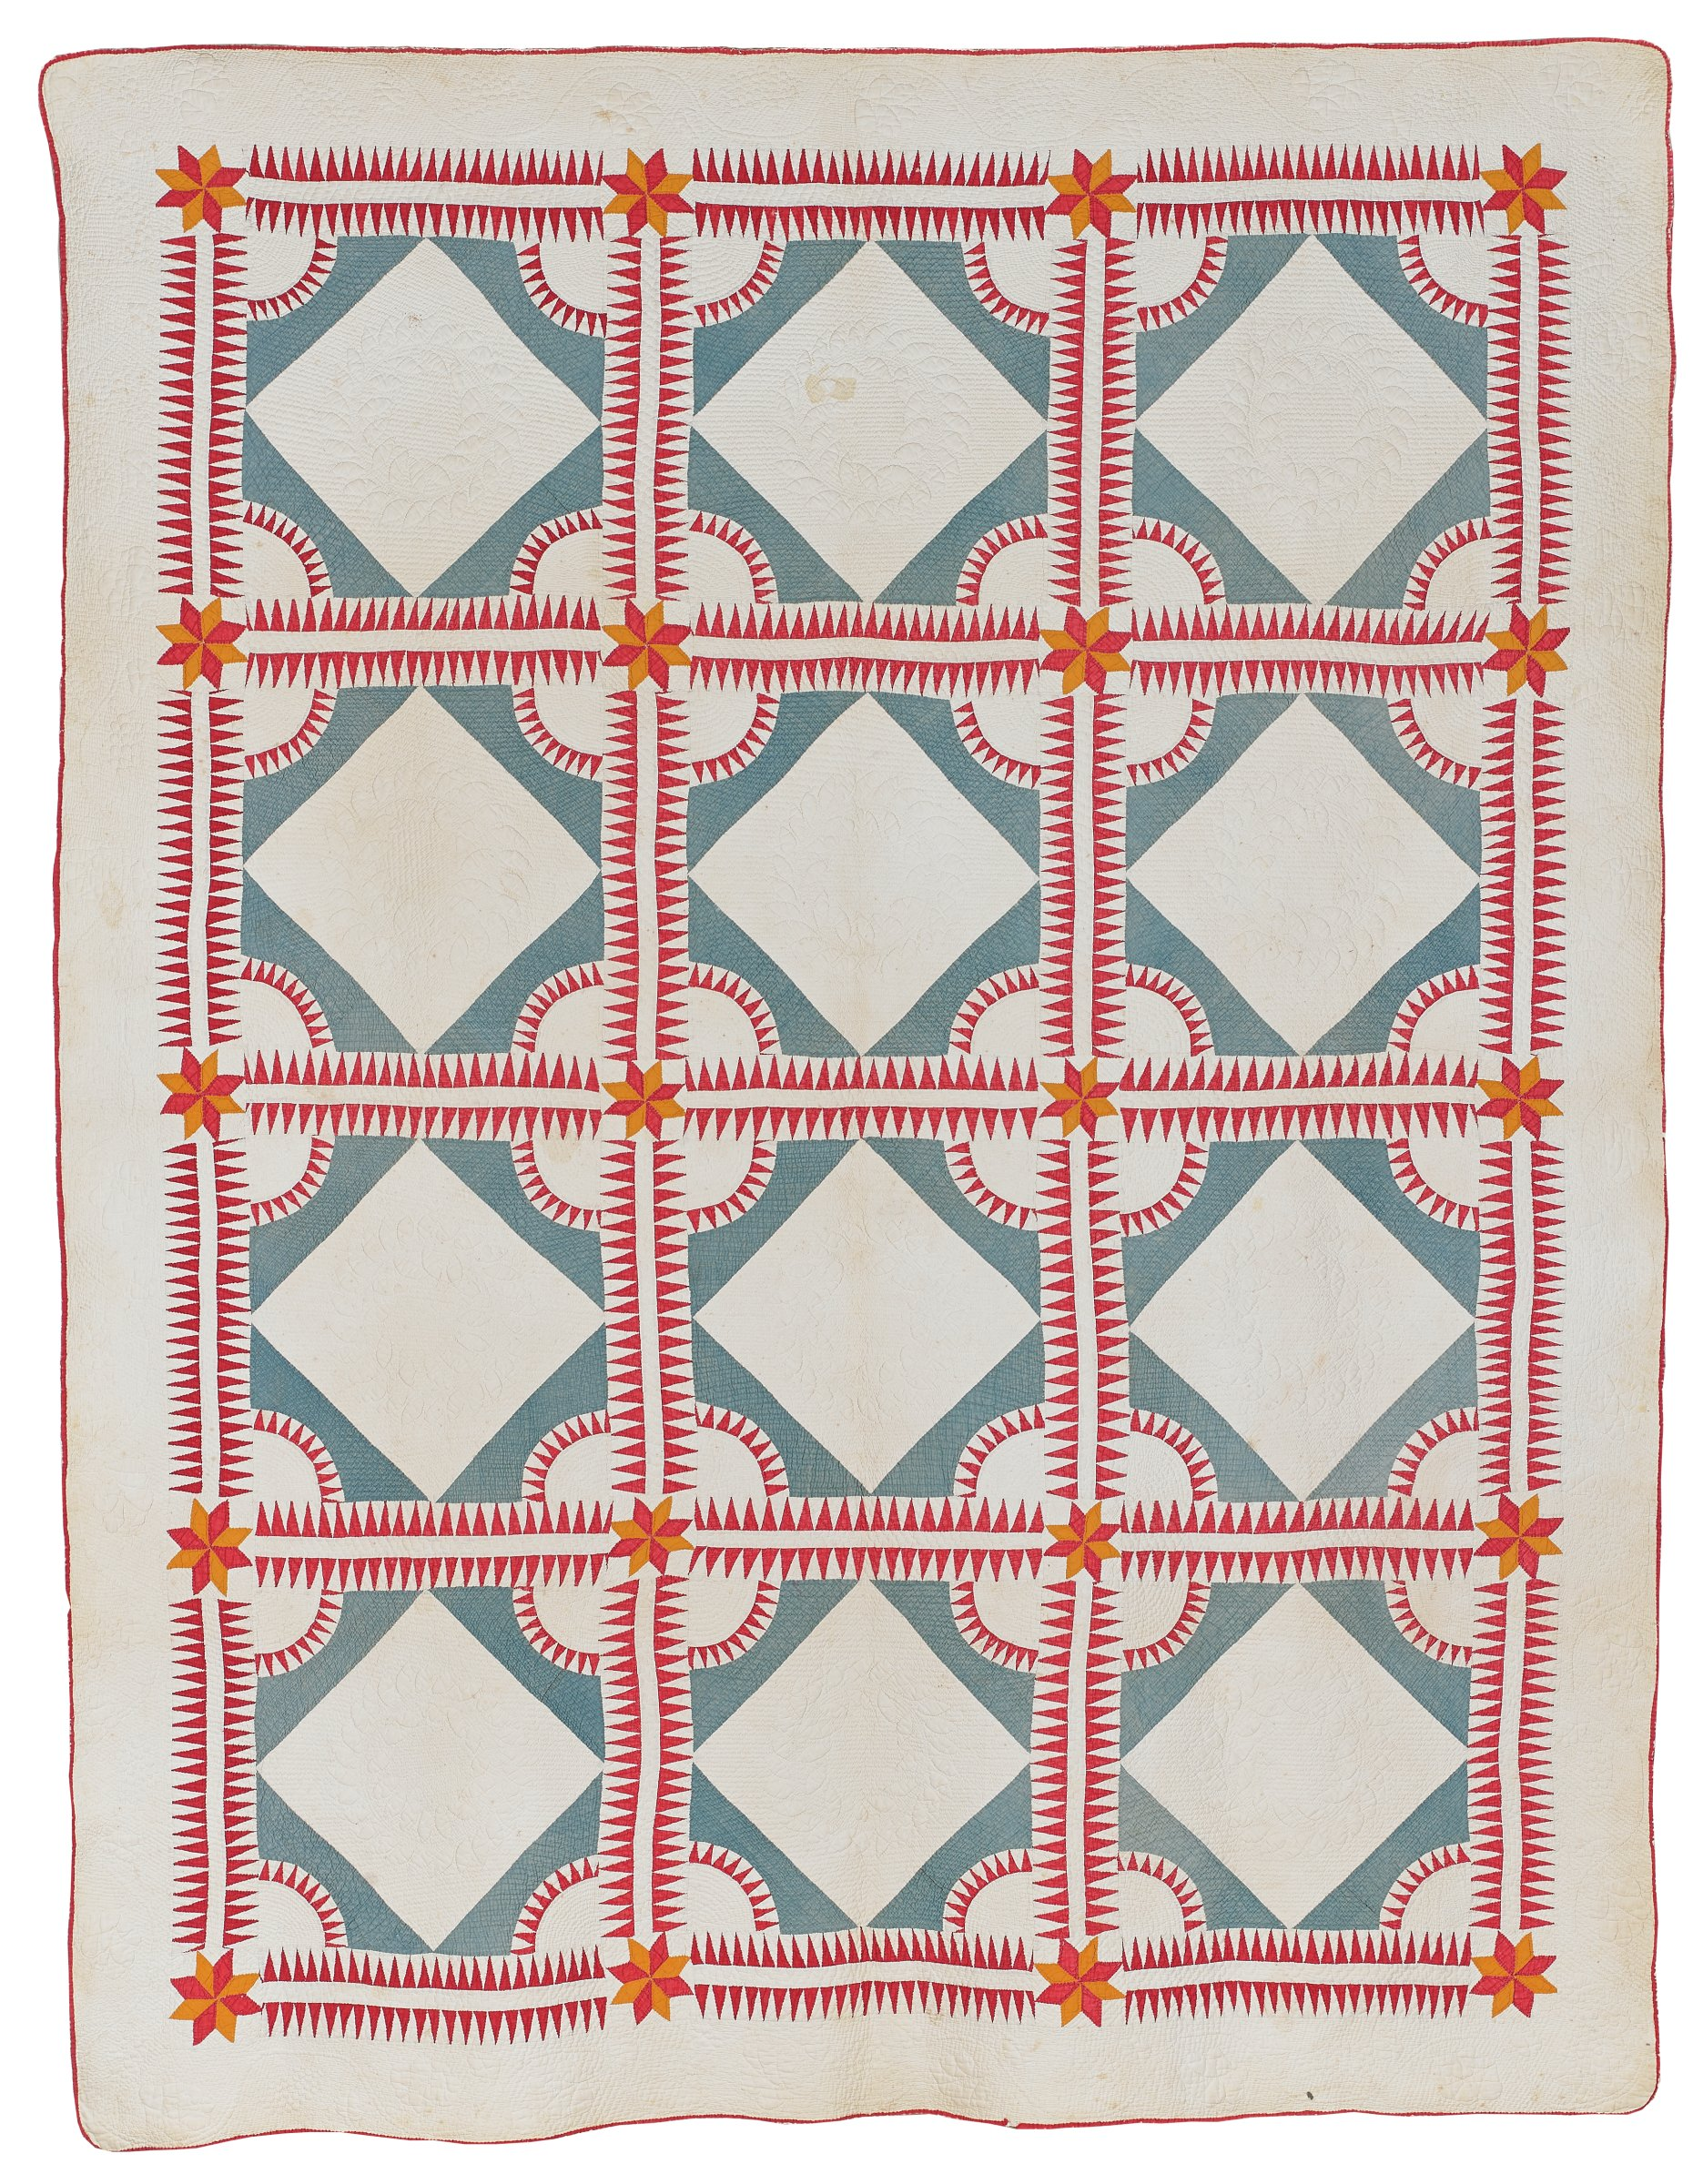 """Large quilt in a variation of the """"Whig's Defeat"""" pattern, on a cream-colored cotton ground a grid of twelve squares each enclosed in a pattern of double bands of repeating nailhead, or dogtooth, motifs in red cotton, at each corner an eight-point star in alternating orange and red, in the center of each square a cream-colored diamond on light blue ground with half-circle notches at each corner highlighted by a band of like nailhead motifs also in red, the backing cream-colored cotton, edged in red."""